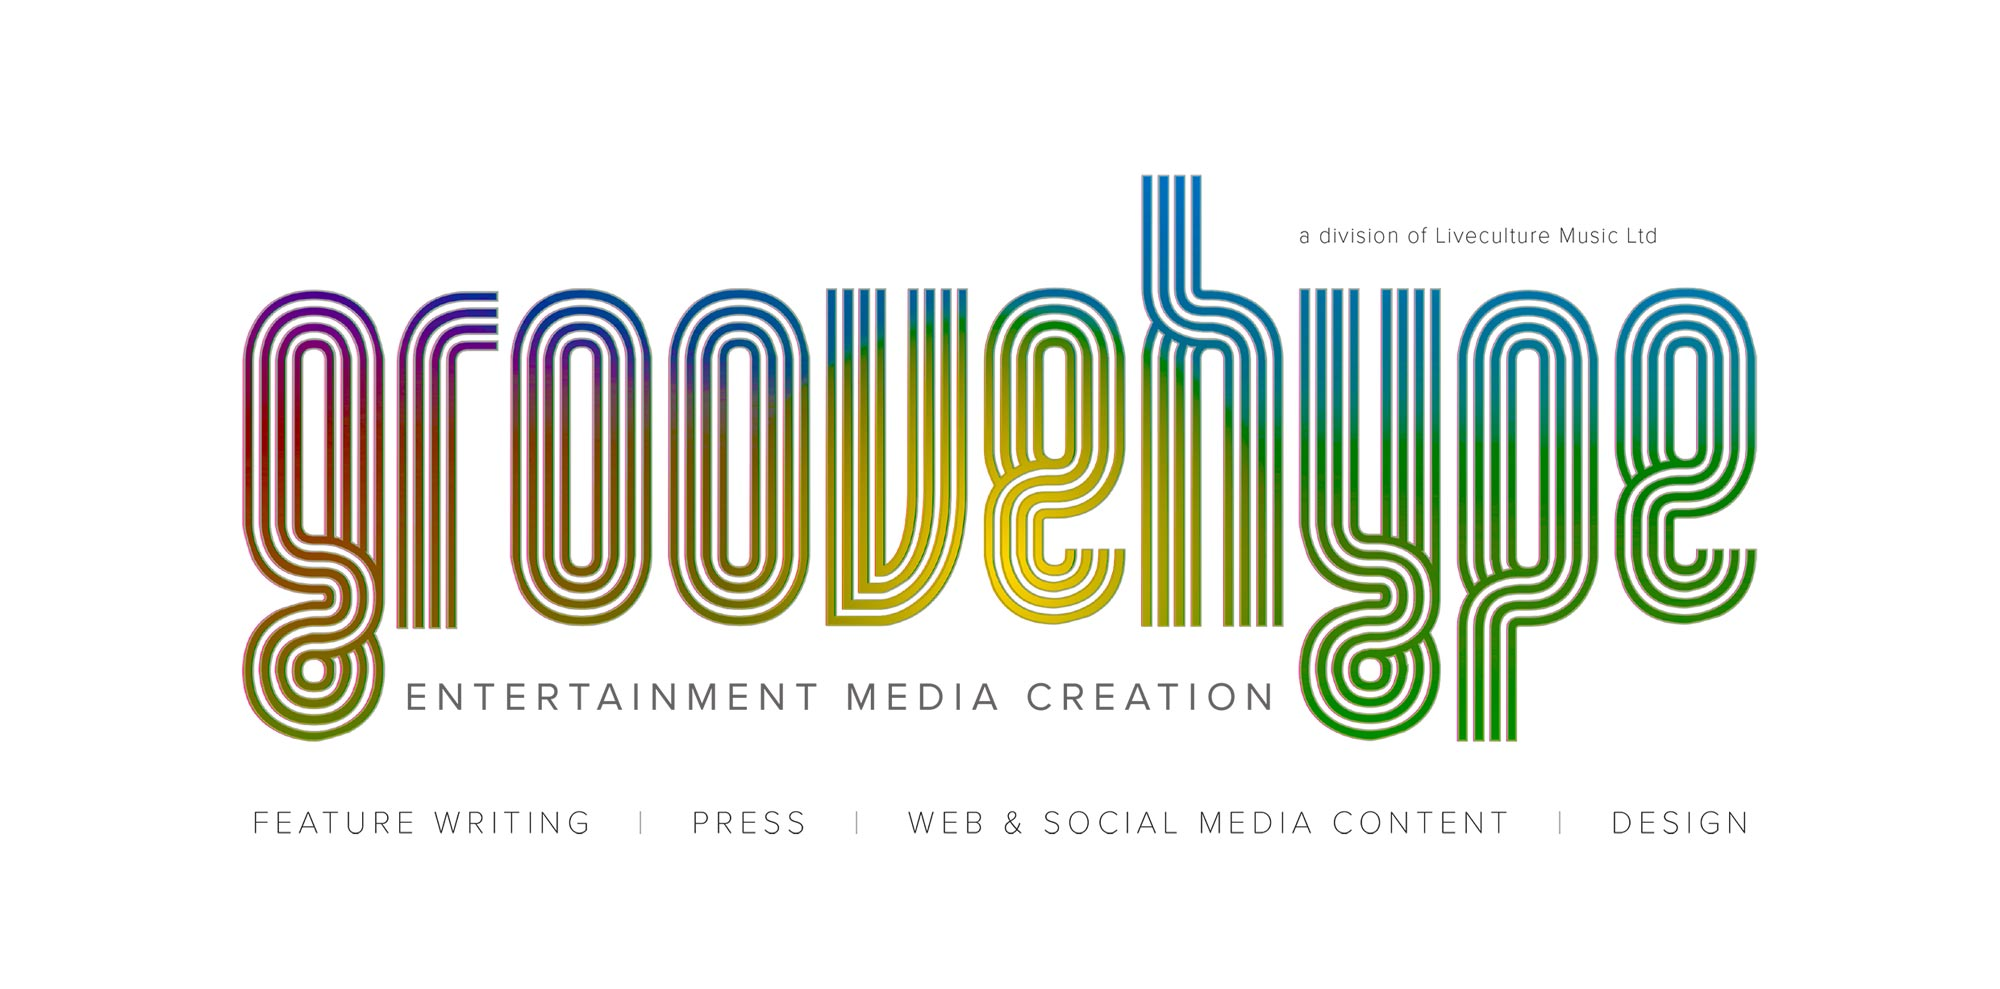 Groovehype - Feature writing, Press, Web and Social Media content, Design